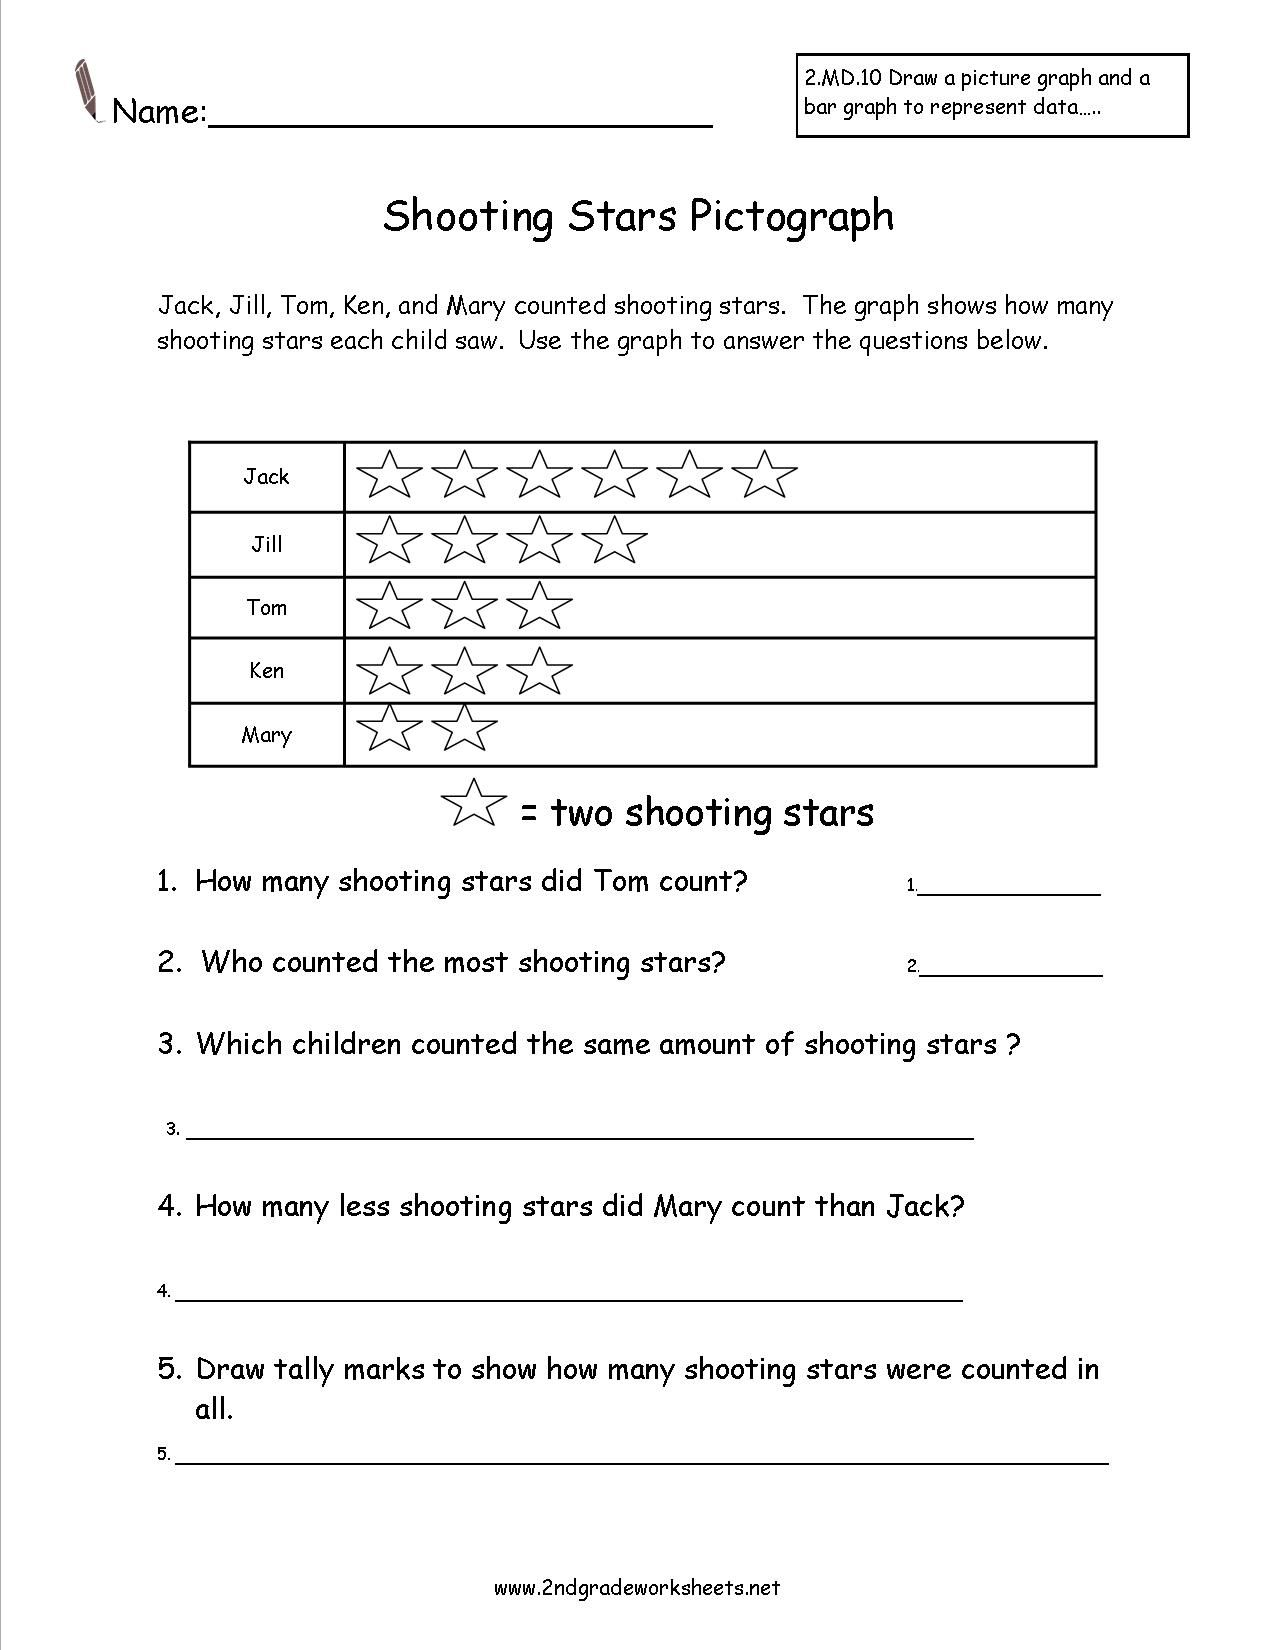 medium resolution of shooting stars pictograph worksheet   Third grade worksheets